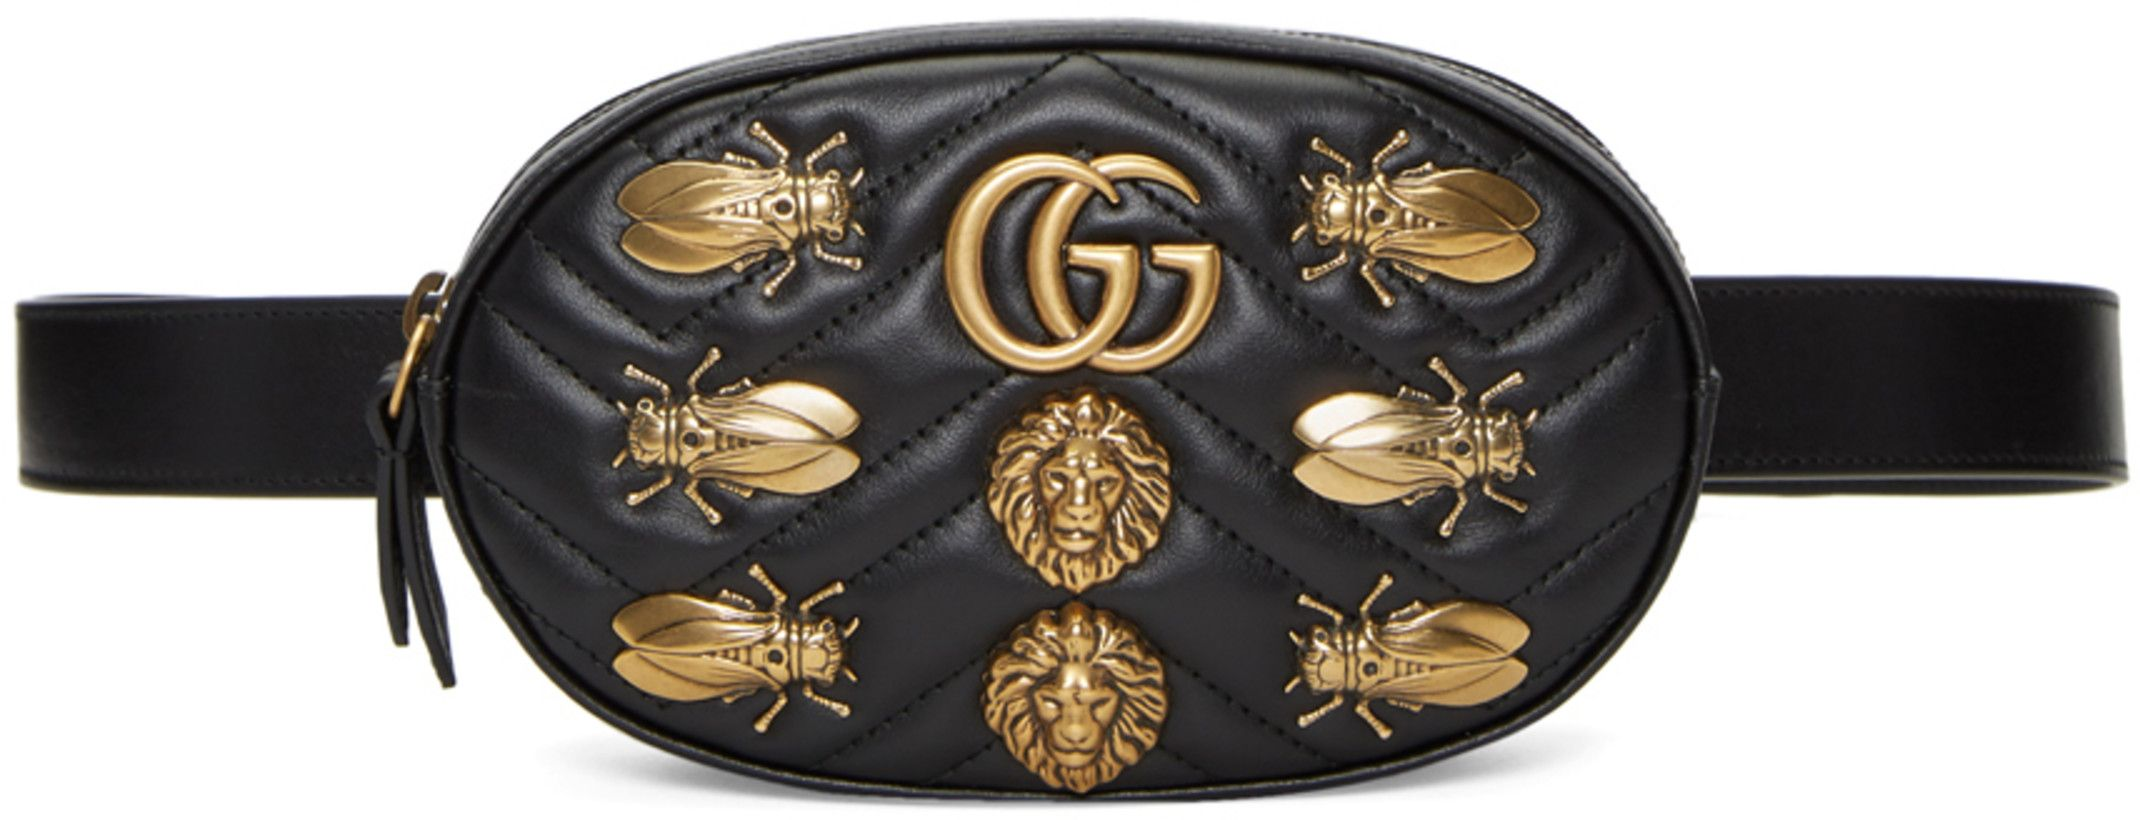 5ce51a67ef0 Gucci - Black GG Marmont Animal Studs Belt Bag